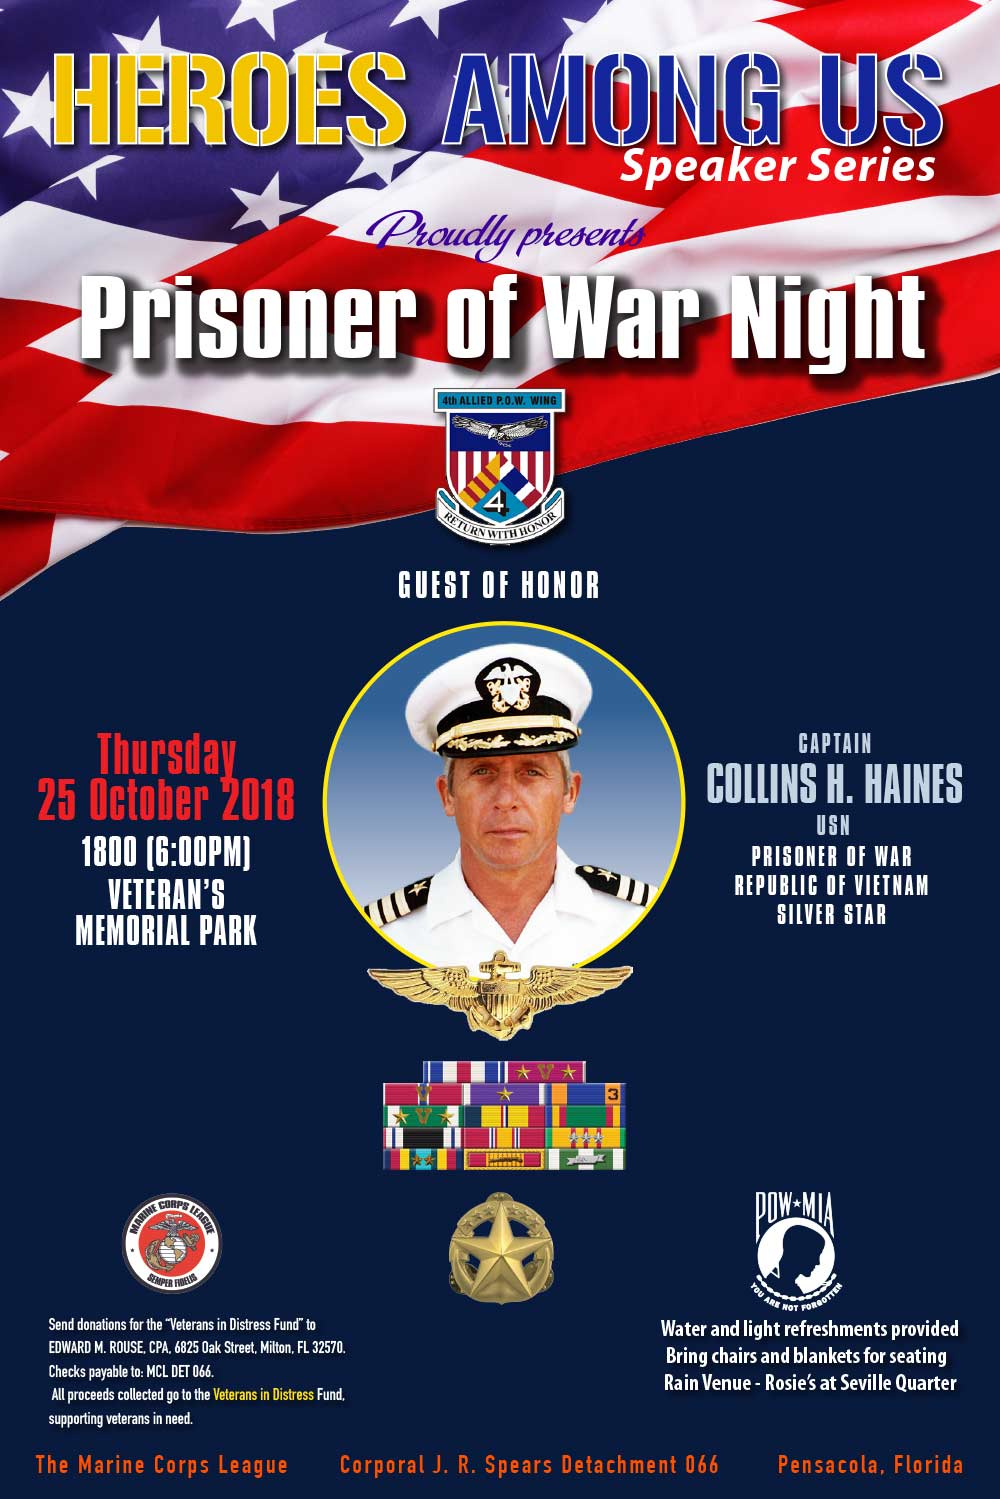 Heroes Among Us - Prisoner of War Night